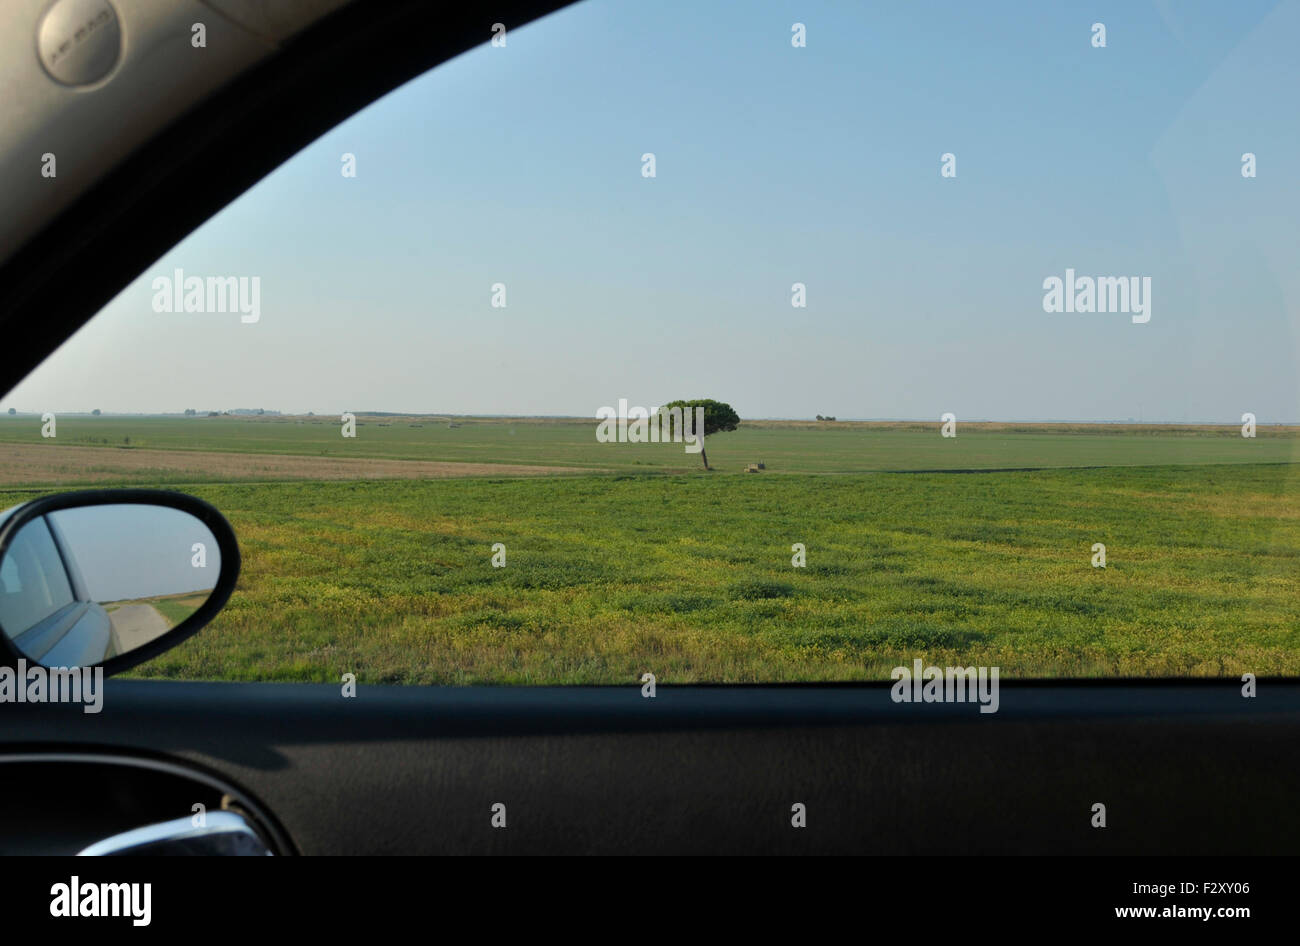 Landscape and car window - Stock Image